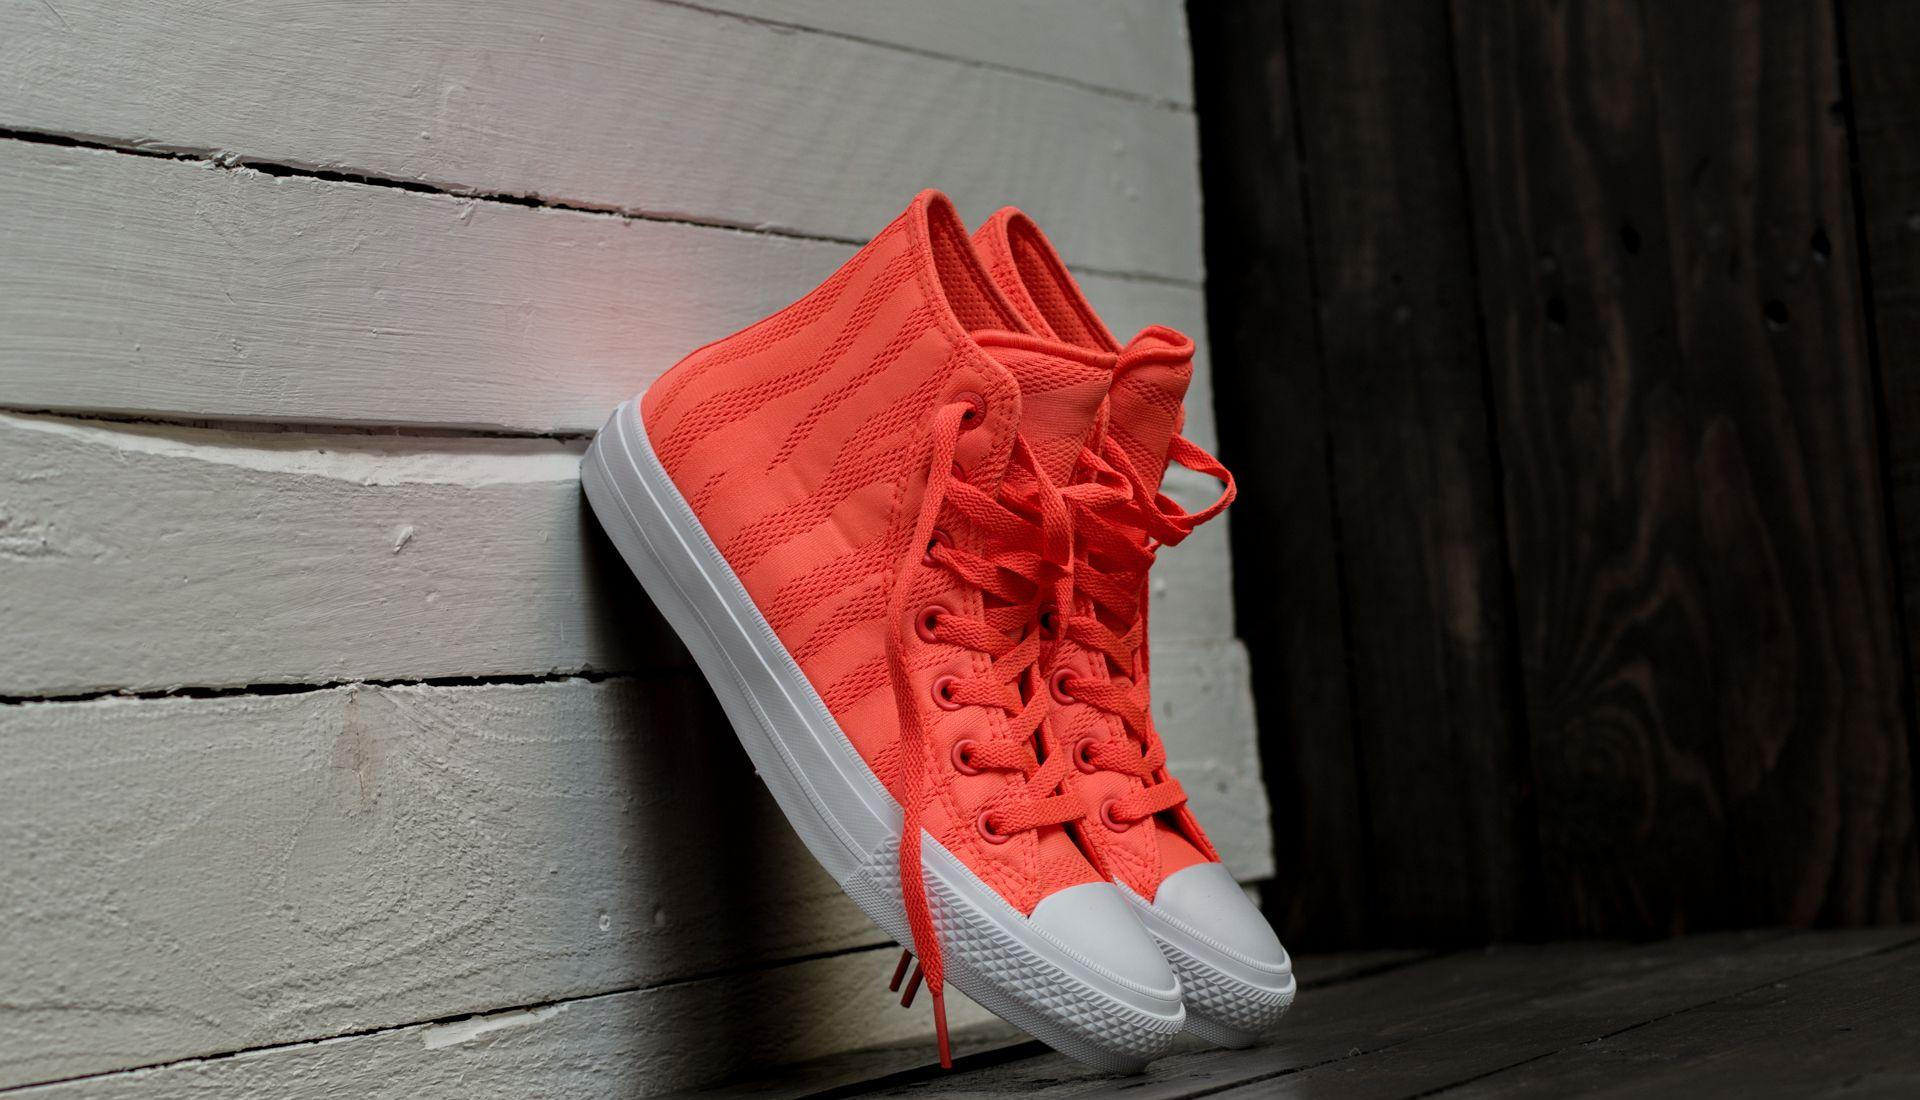 608a8683003 ... Chuck Taylor All Star II Hi Hyper Orange  White  Gum. -13%. Converse ...